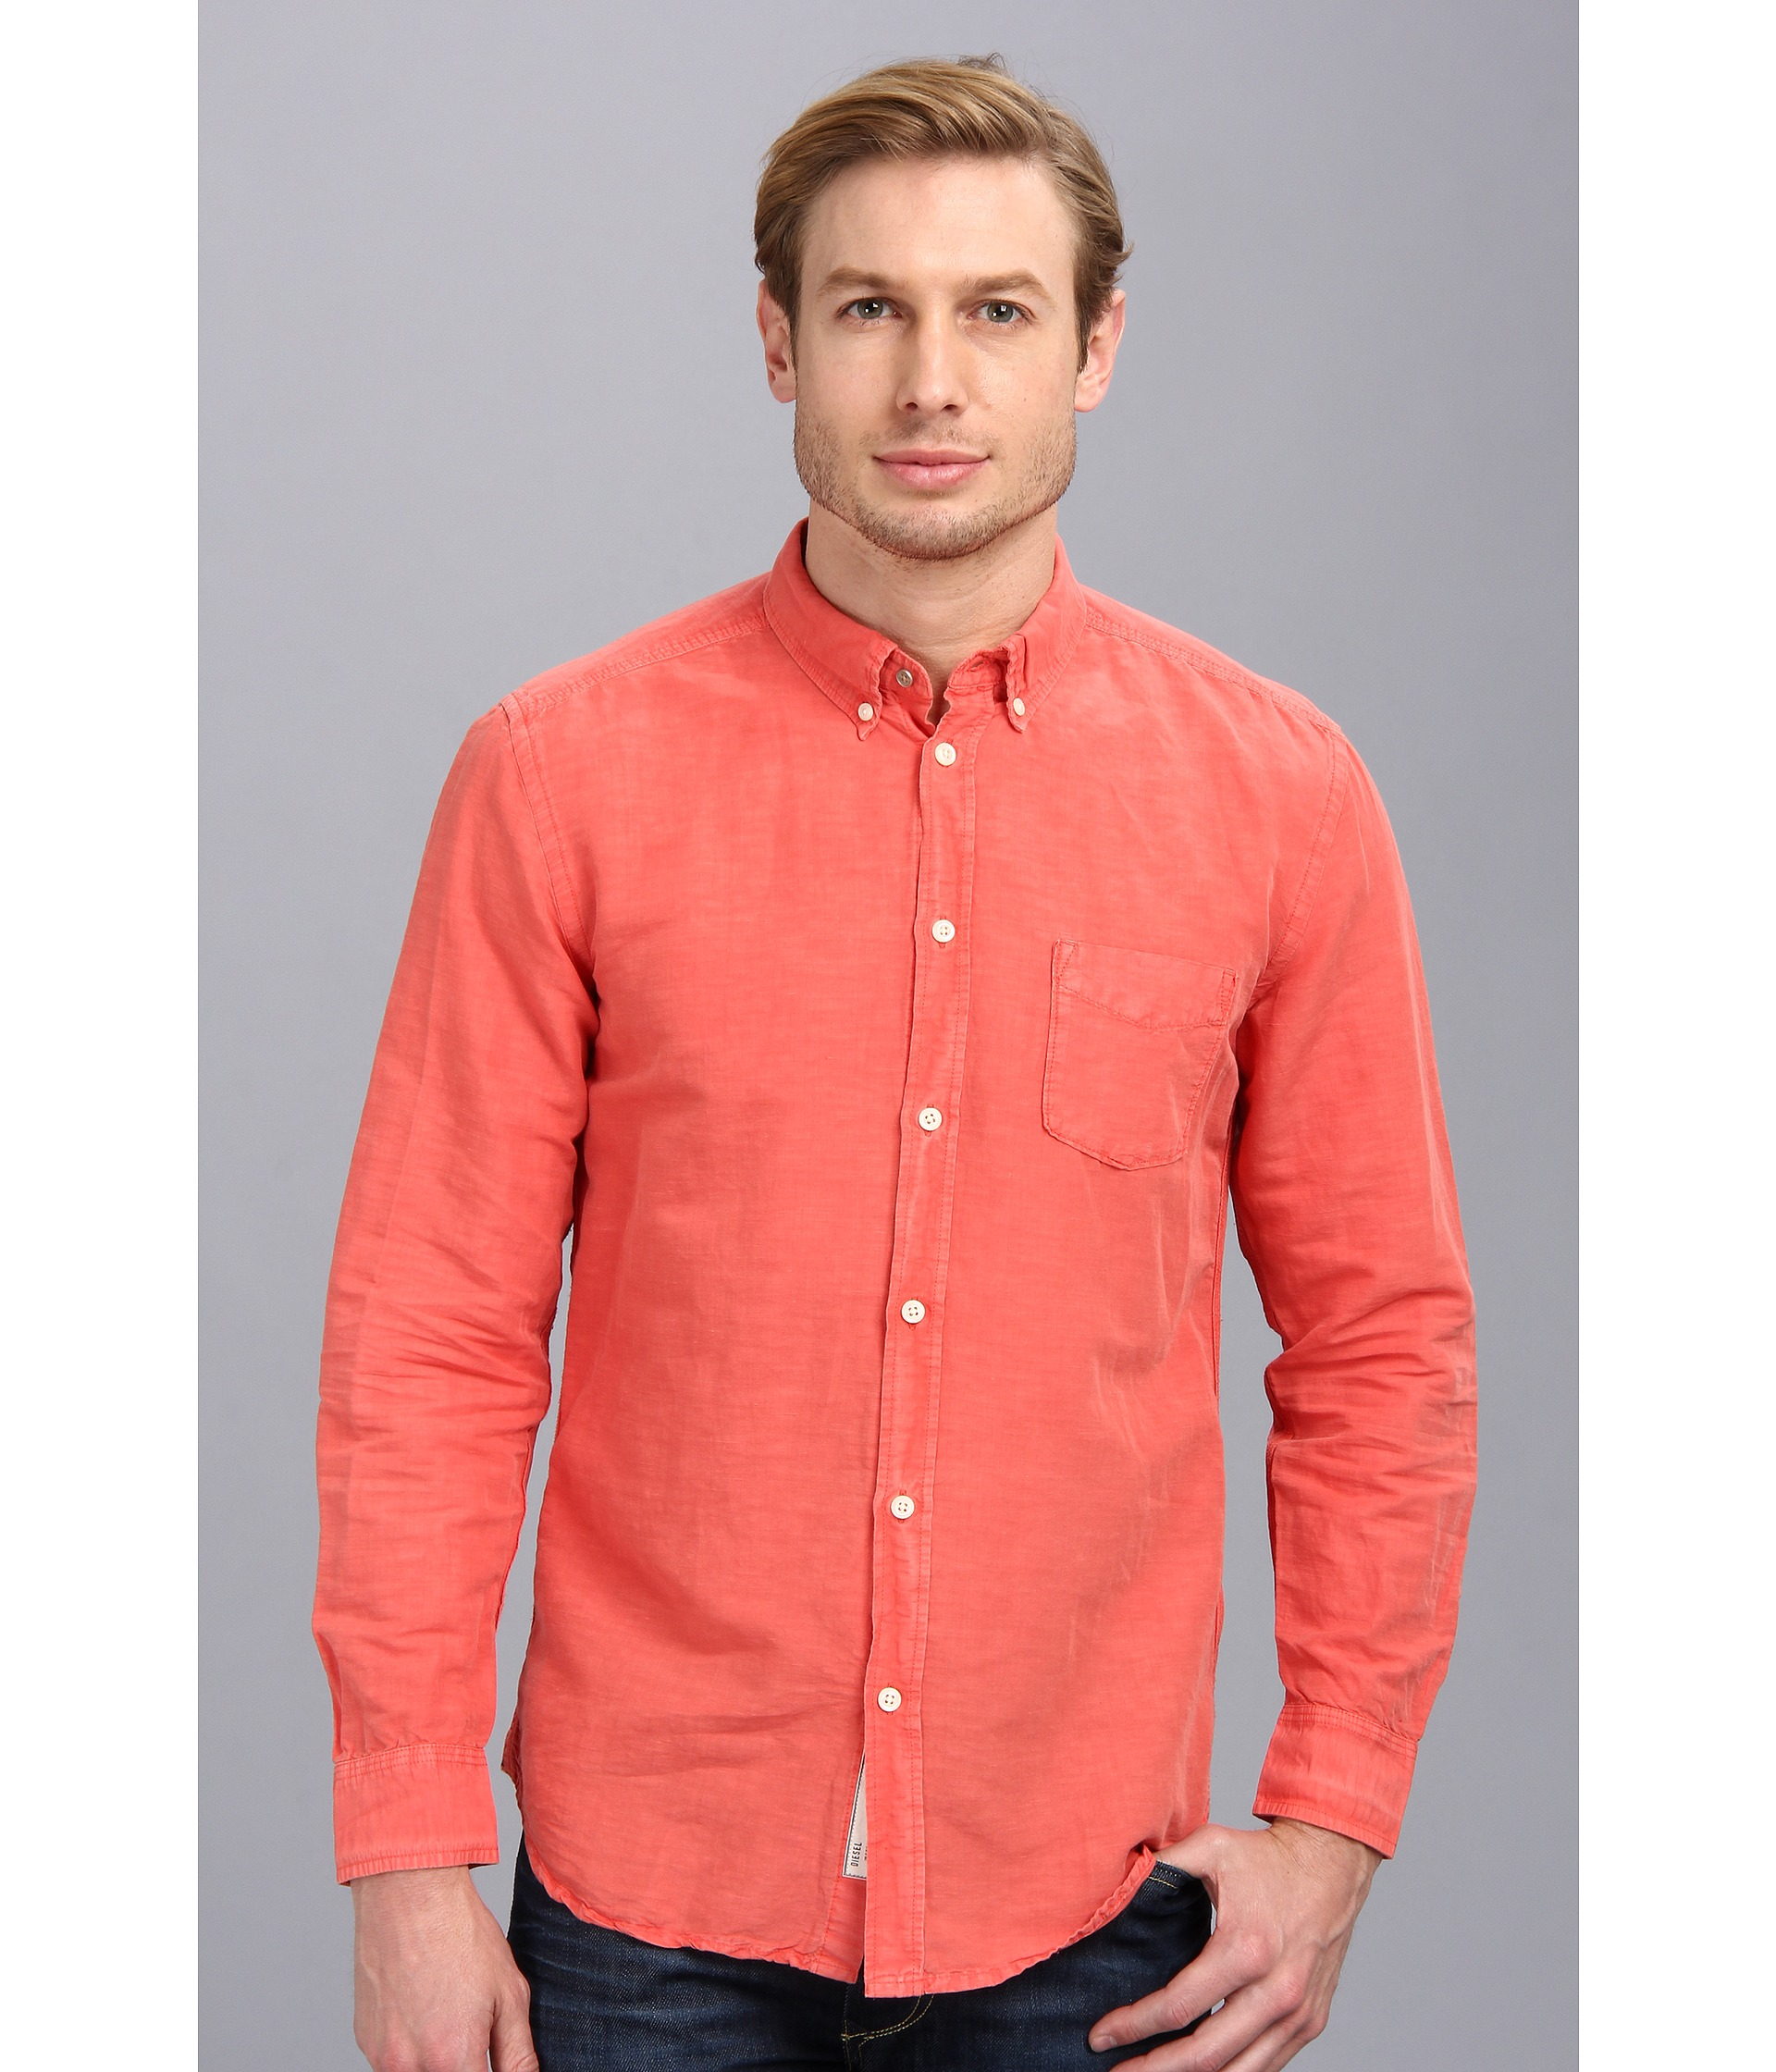 Mens Coral Button Up Shirt | Is Shirt